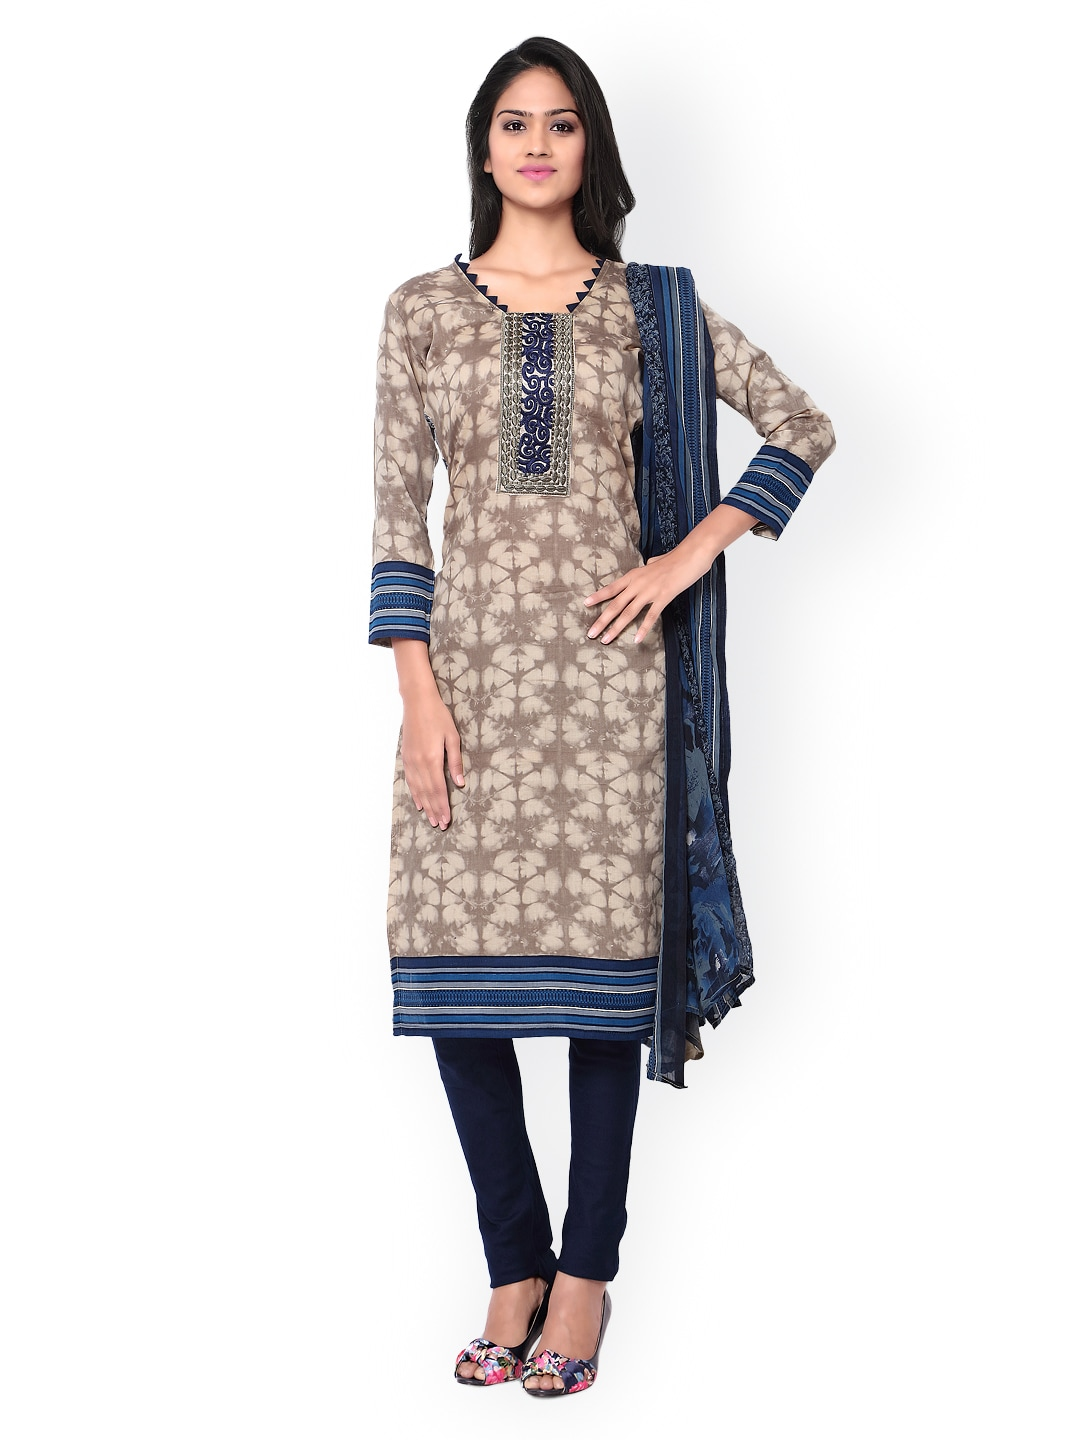 Inddus Cream-Coloured & Blue Tie-Dyed Cotton Unstitched Dress Material image